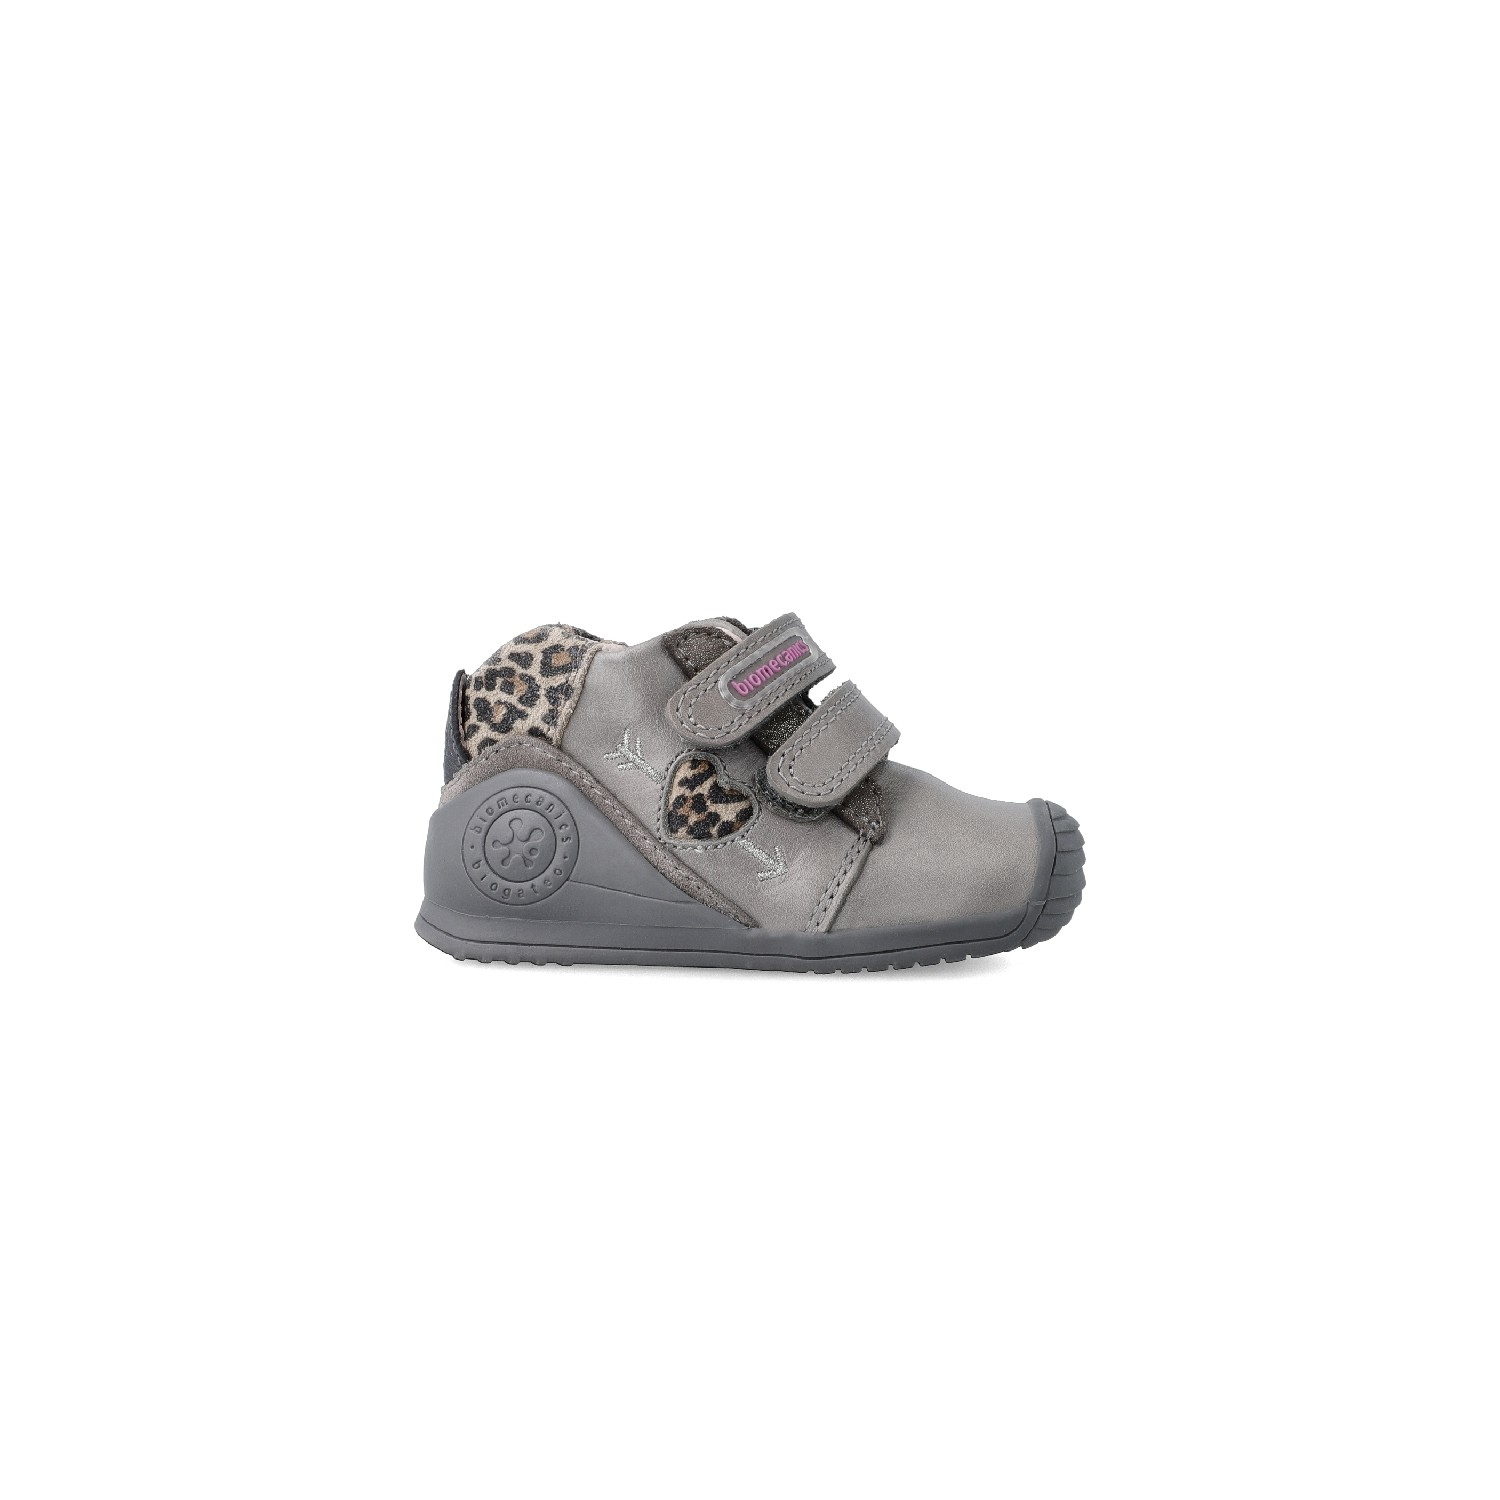 Leather ankle boot for baby Alisia